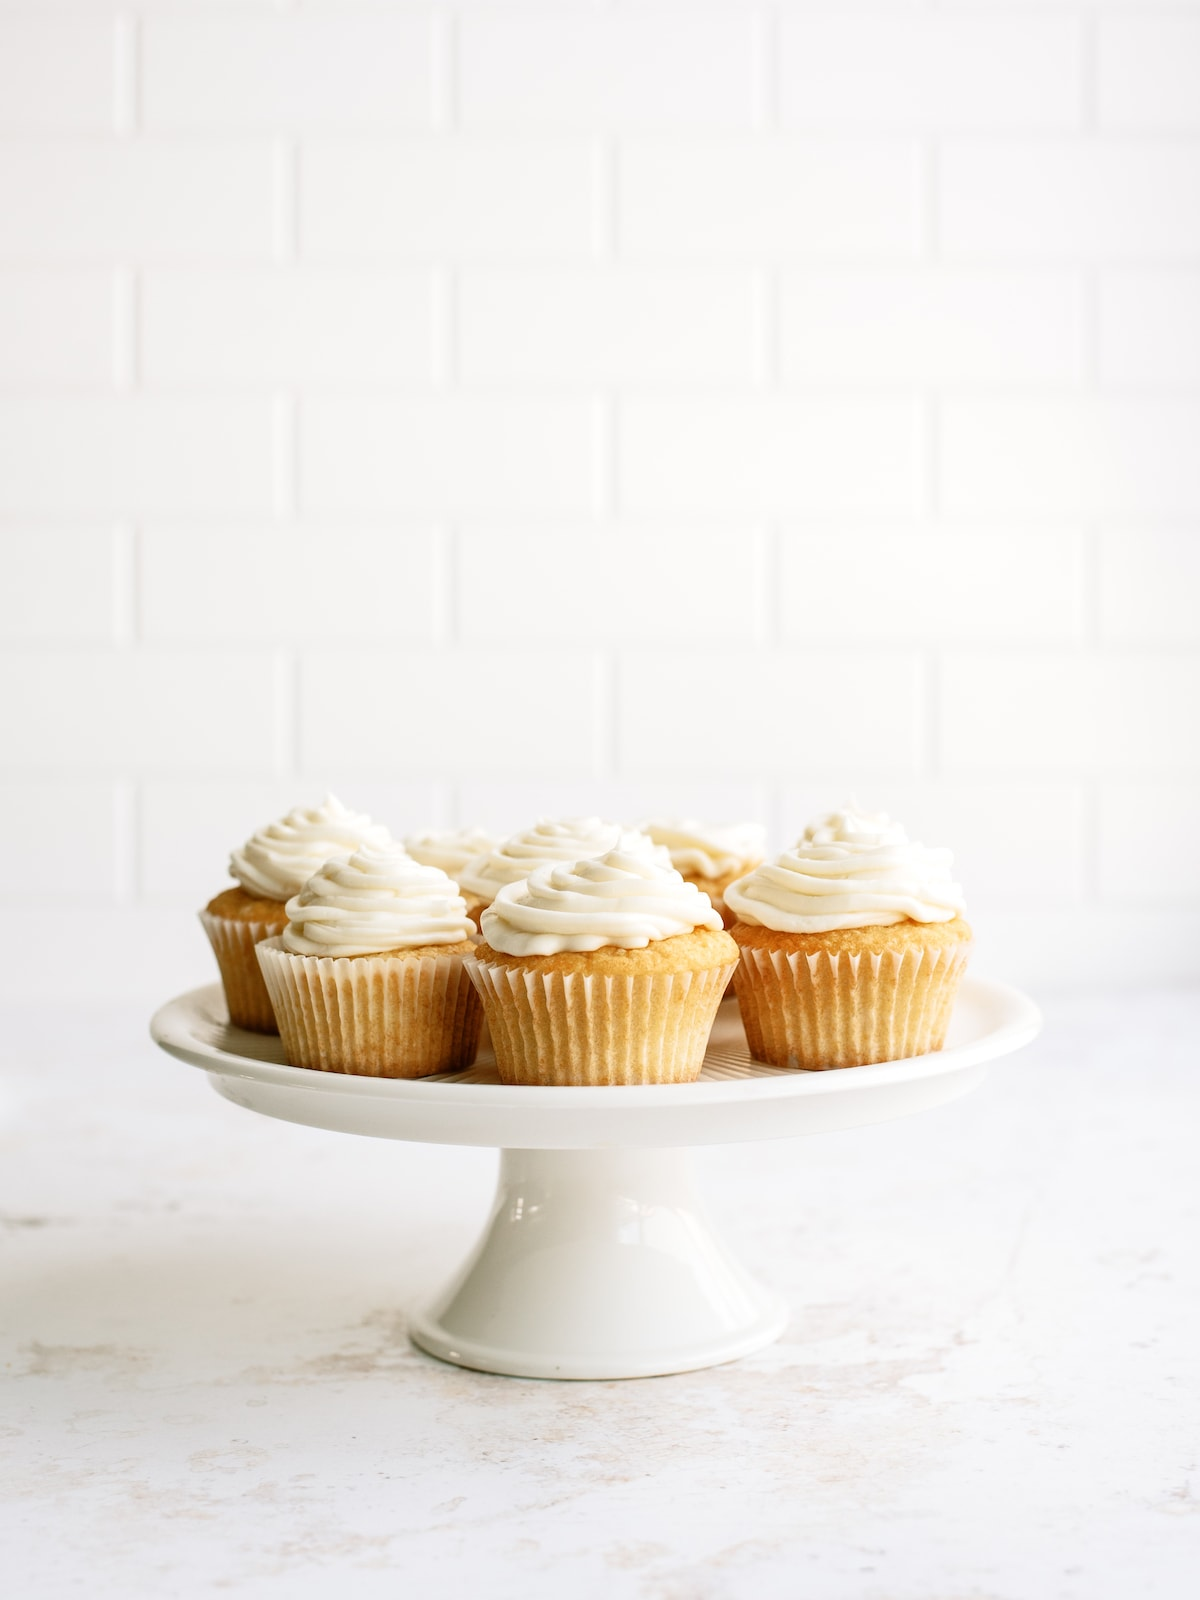 frosted vanilla cupcakes on a white cake platter